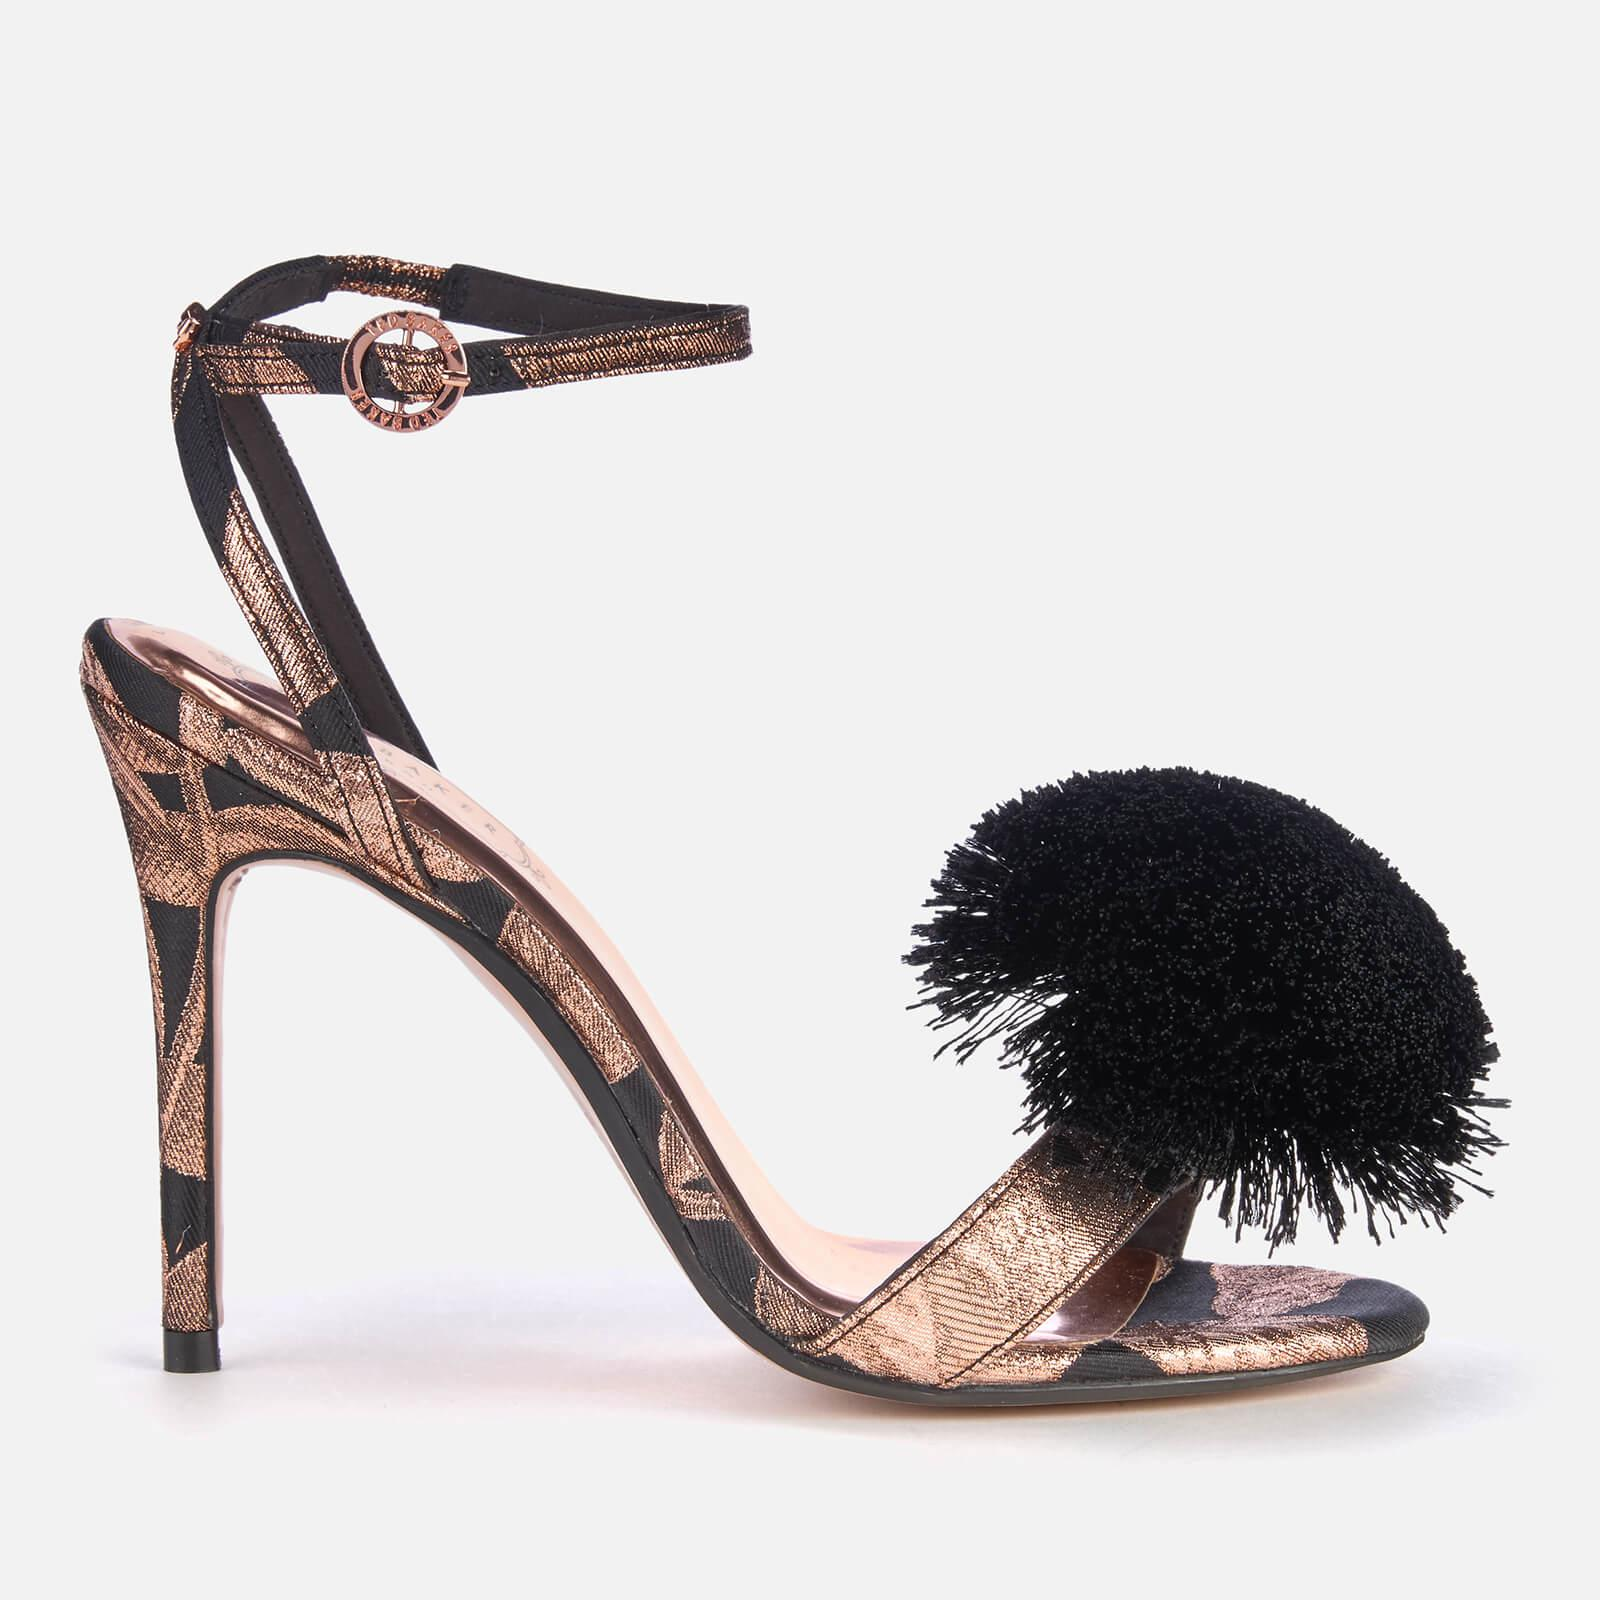 4b30a2b6f Ted Baker. Women s Black Elynie Jacquard Barely There Heeled Sandals